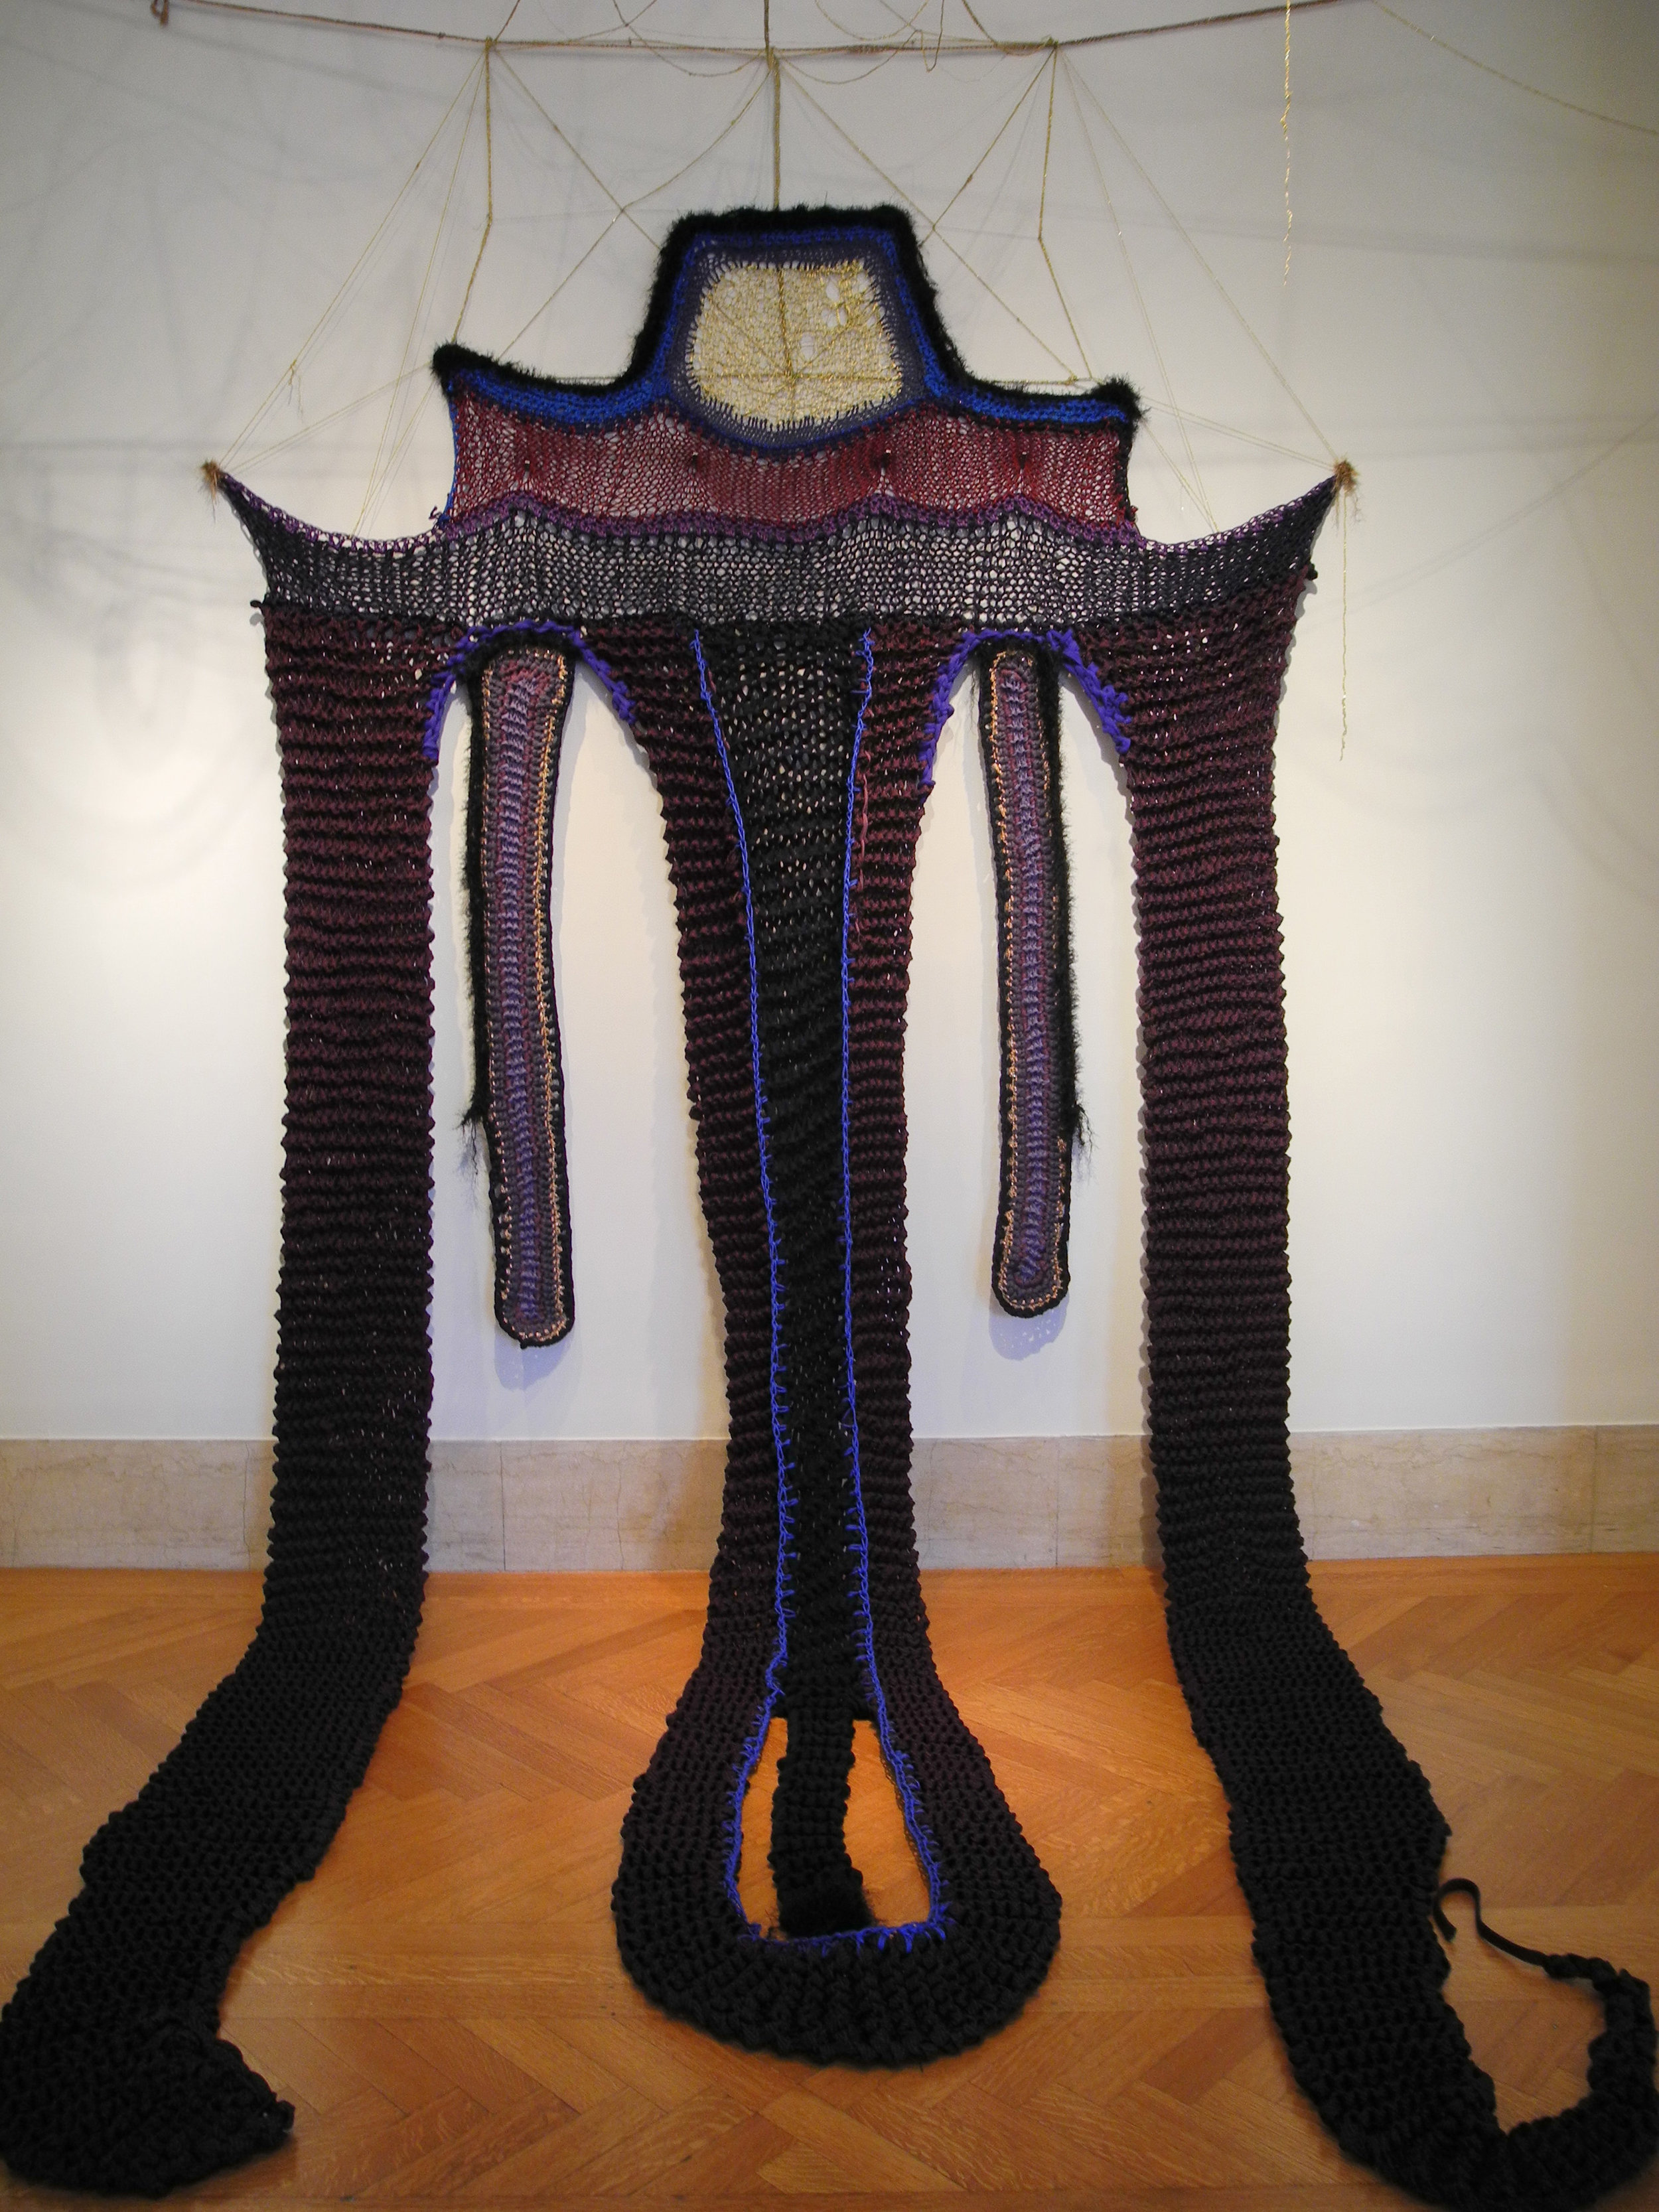 Sheila Pepe. Second Vatican Council Wrap. 2013. Synthetic and natural yarn, and metallic thread. Collection of the artist.